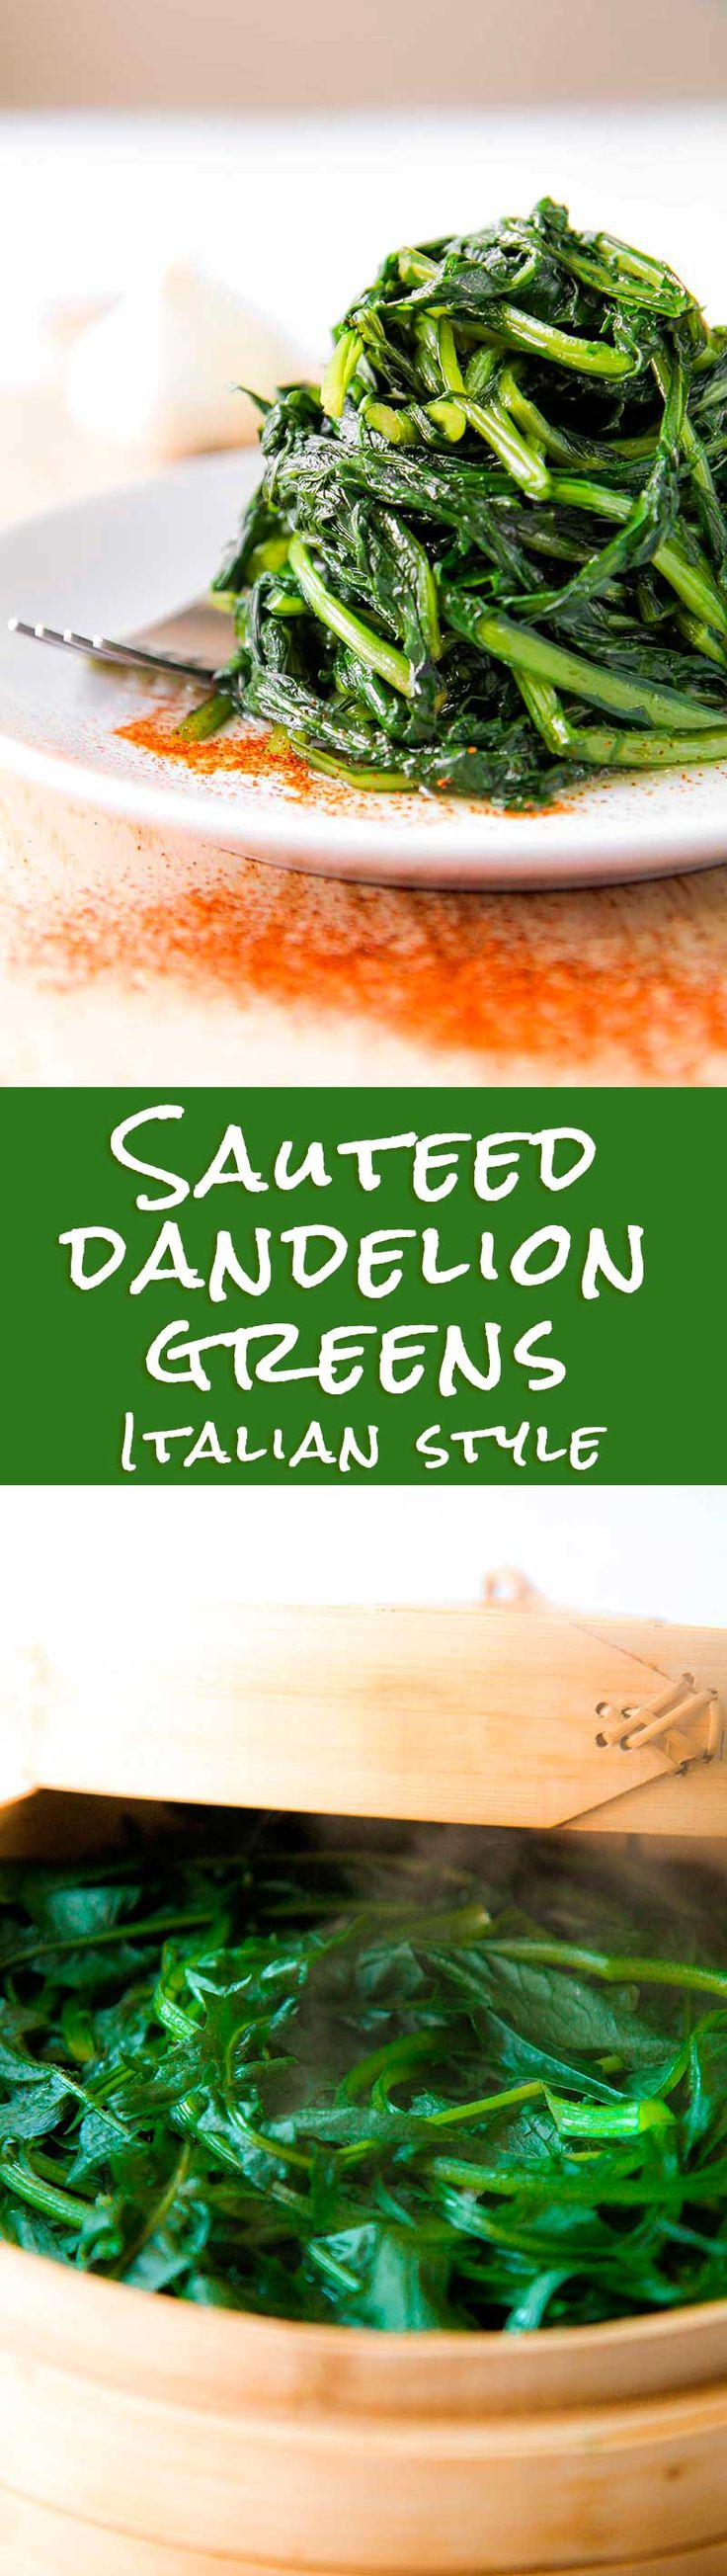 SAUTEED DANDELION GREENS ROMAN STYLE (cicoria alla romana) - Sauteed dandelion greens is a very important ingredient of Roman cuisine. For centuries the most poor Roman familys, use to harvest wild dandelion greens aside the suburbs streets of  the Italian capital, and cook them with simple ingredients. The farmers use to bring sauteed dandelion greens with them eating this vegetables as lunch along with simple homemade bread. This vegetable is both tasty and healthy!  - greens dinner recipe